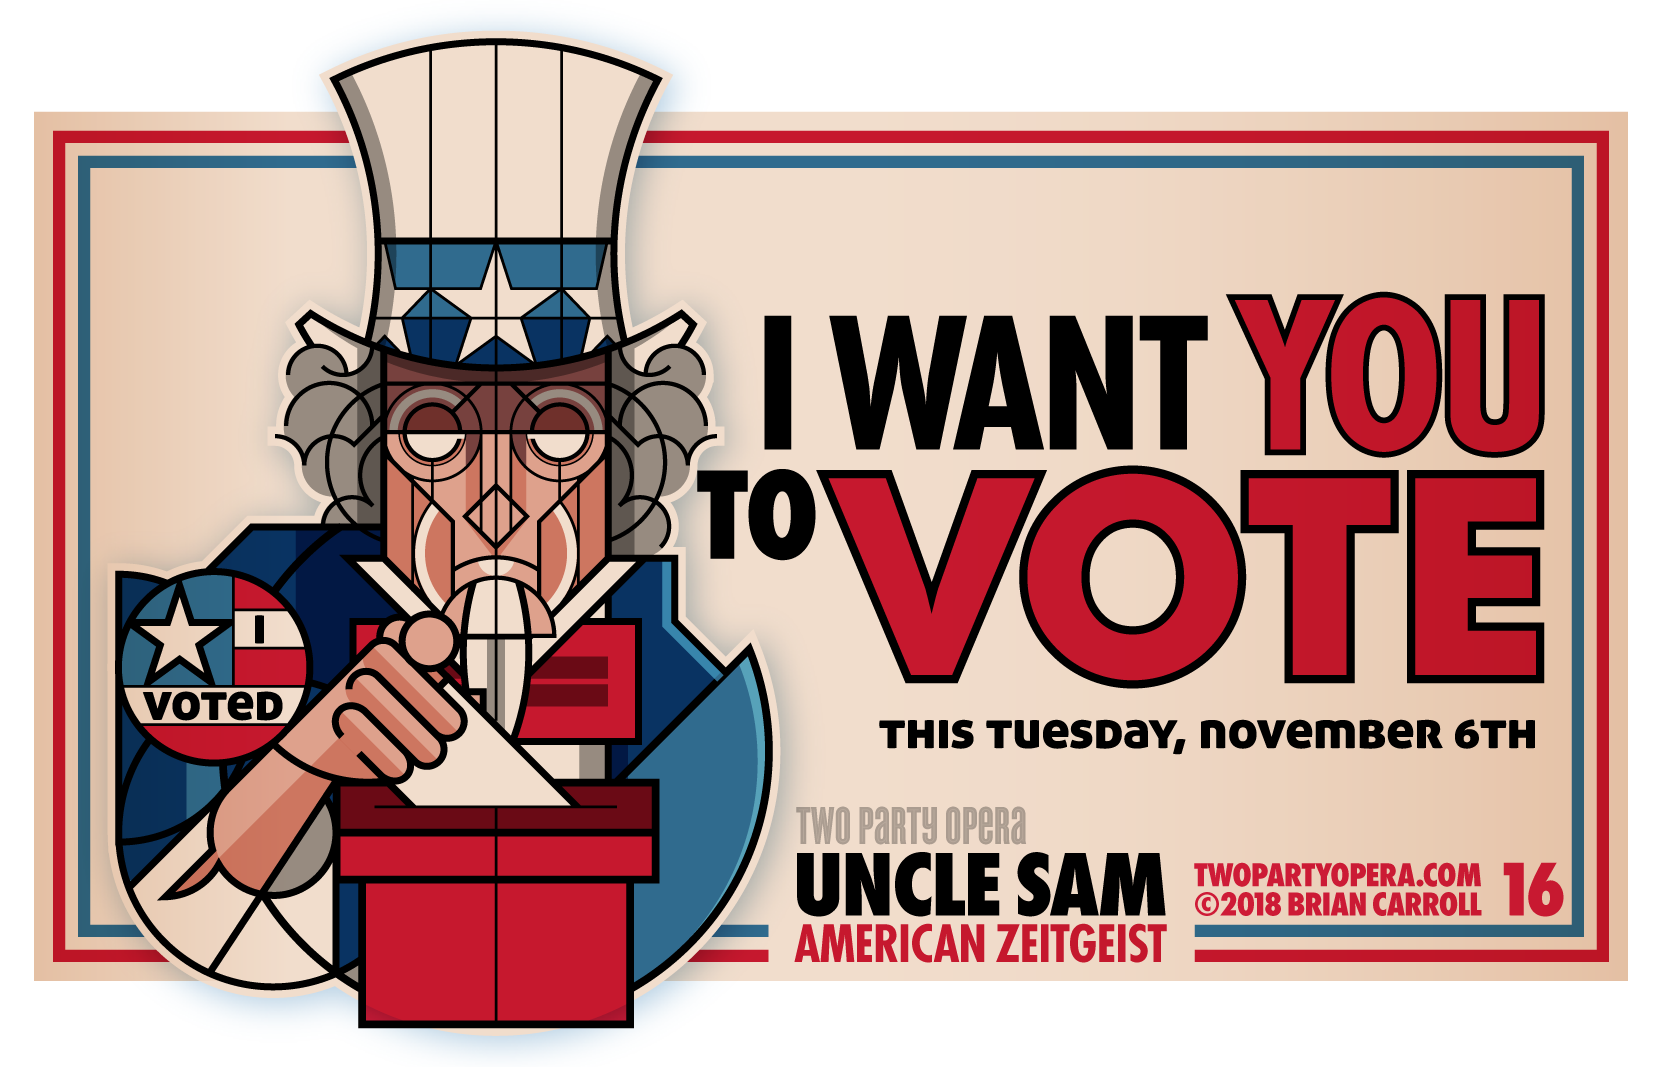 Uncle Sam: American Zeitgeist – 16